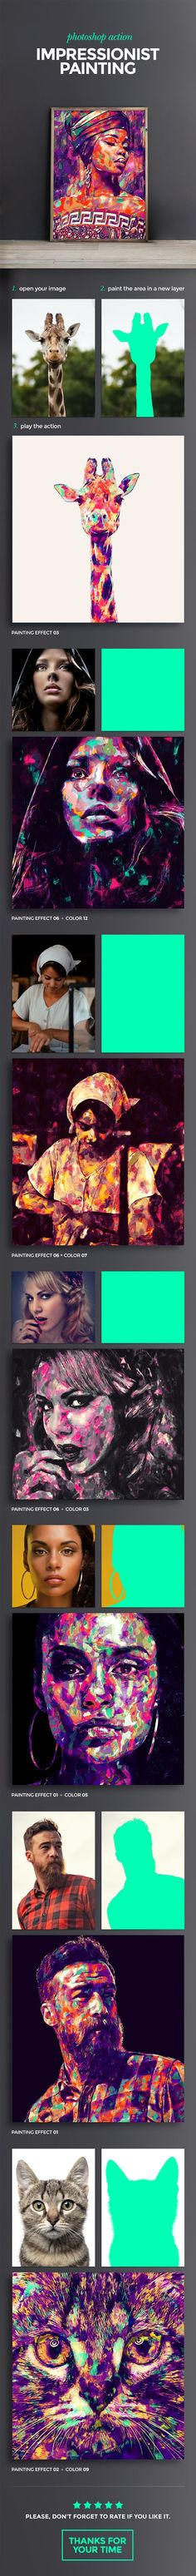 Impressionist Painting Photoshop Action. Download: https://graphicriver.net/item/impressionist-painting-photoshop-action/16924846?s_rank=58?ref=thanhdesign